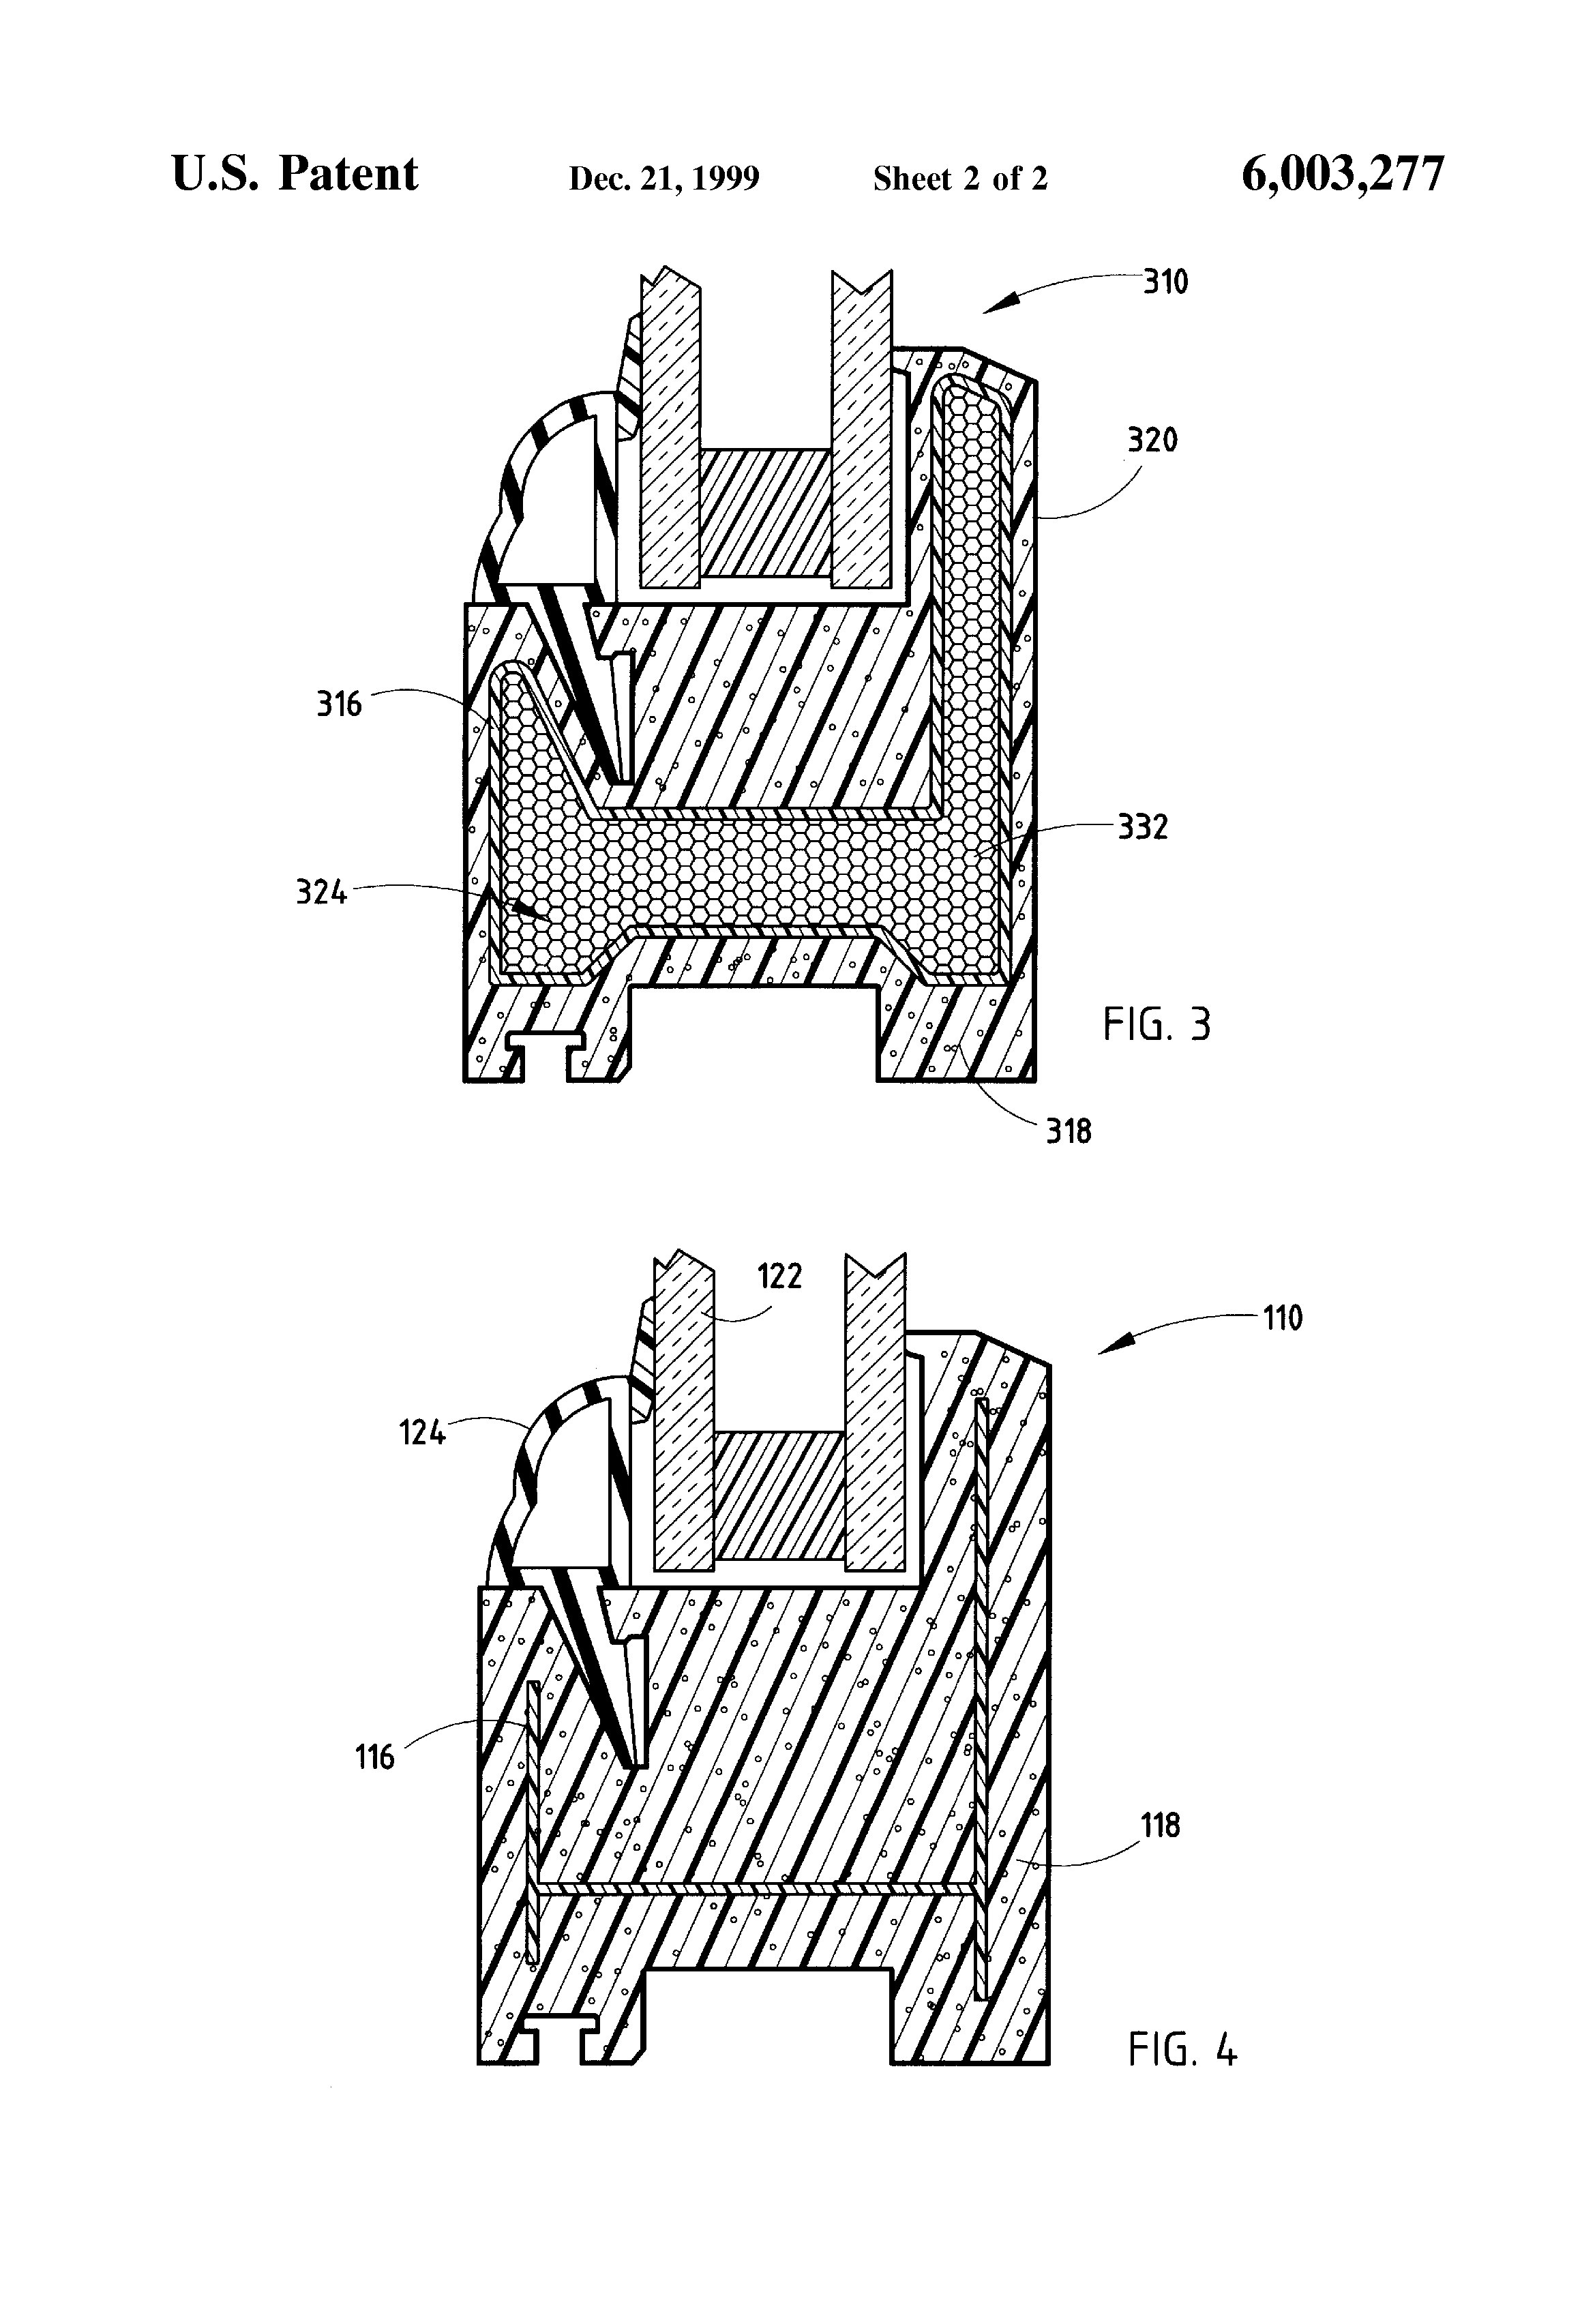 Cellular pvc window construction and technology - Patent Drawing